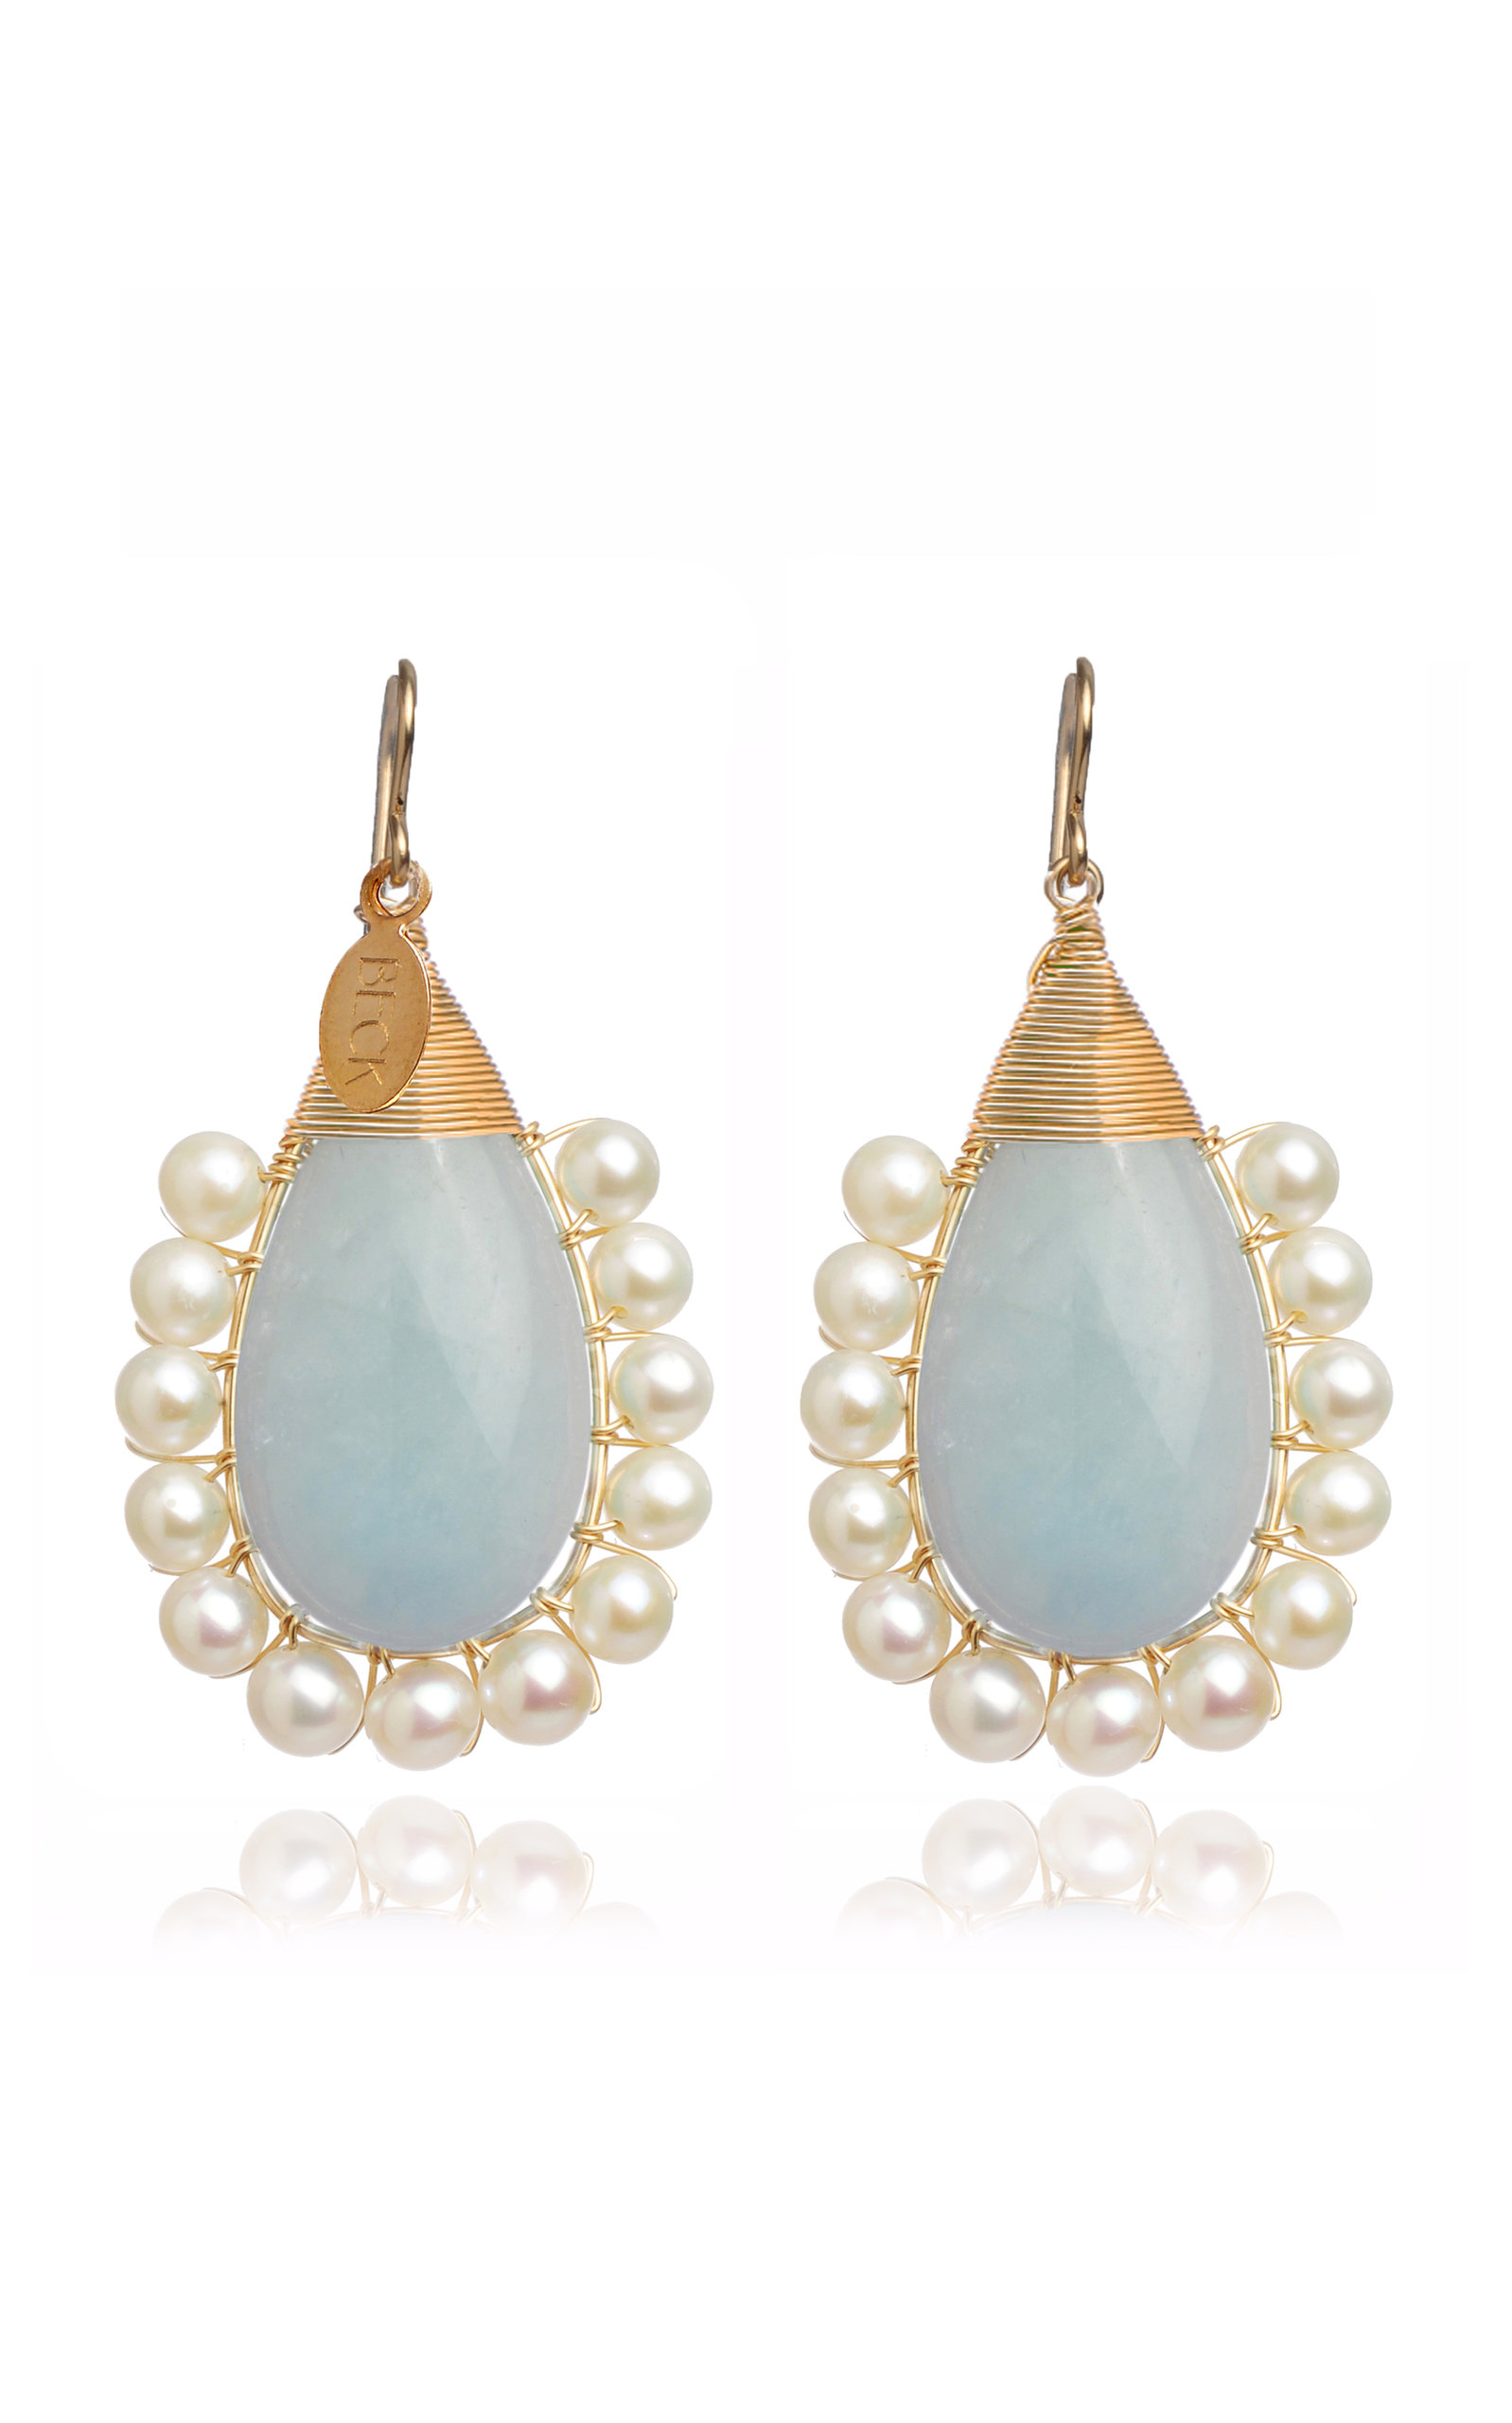 BECK JEWELS AQUA LOLITA GOLD-FILLED AQUAMARINE AND PEARL EARRINGS